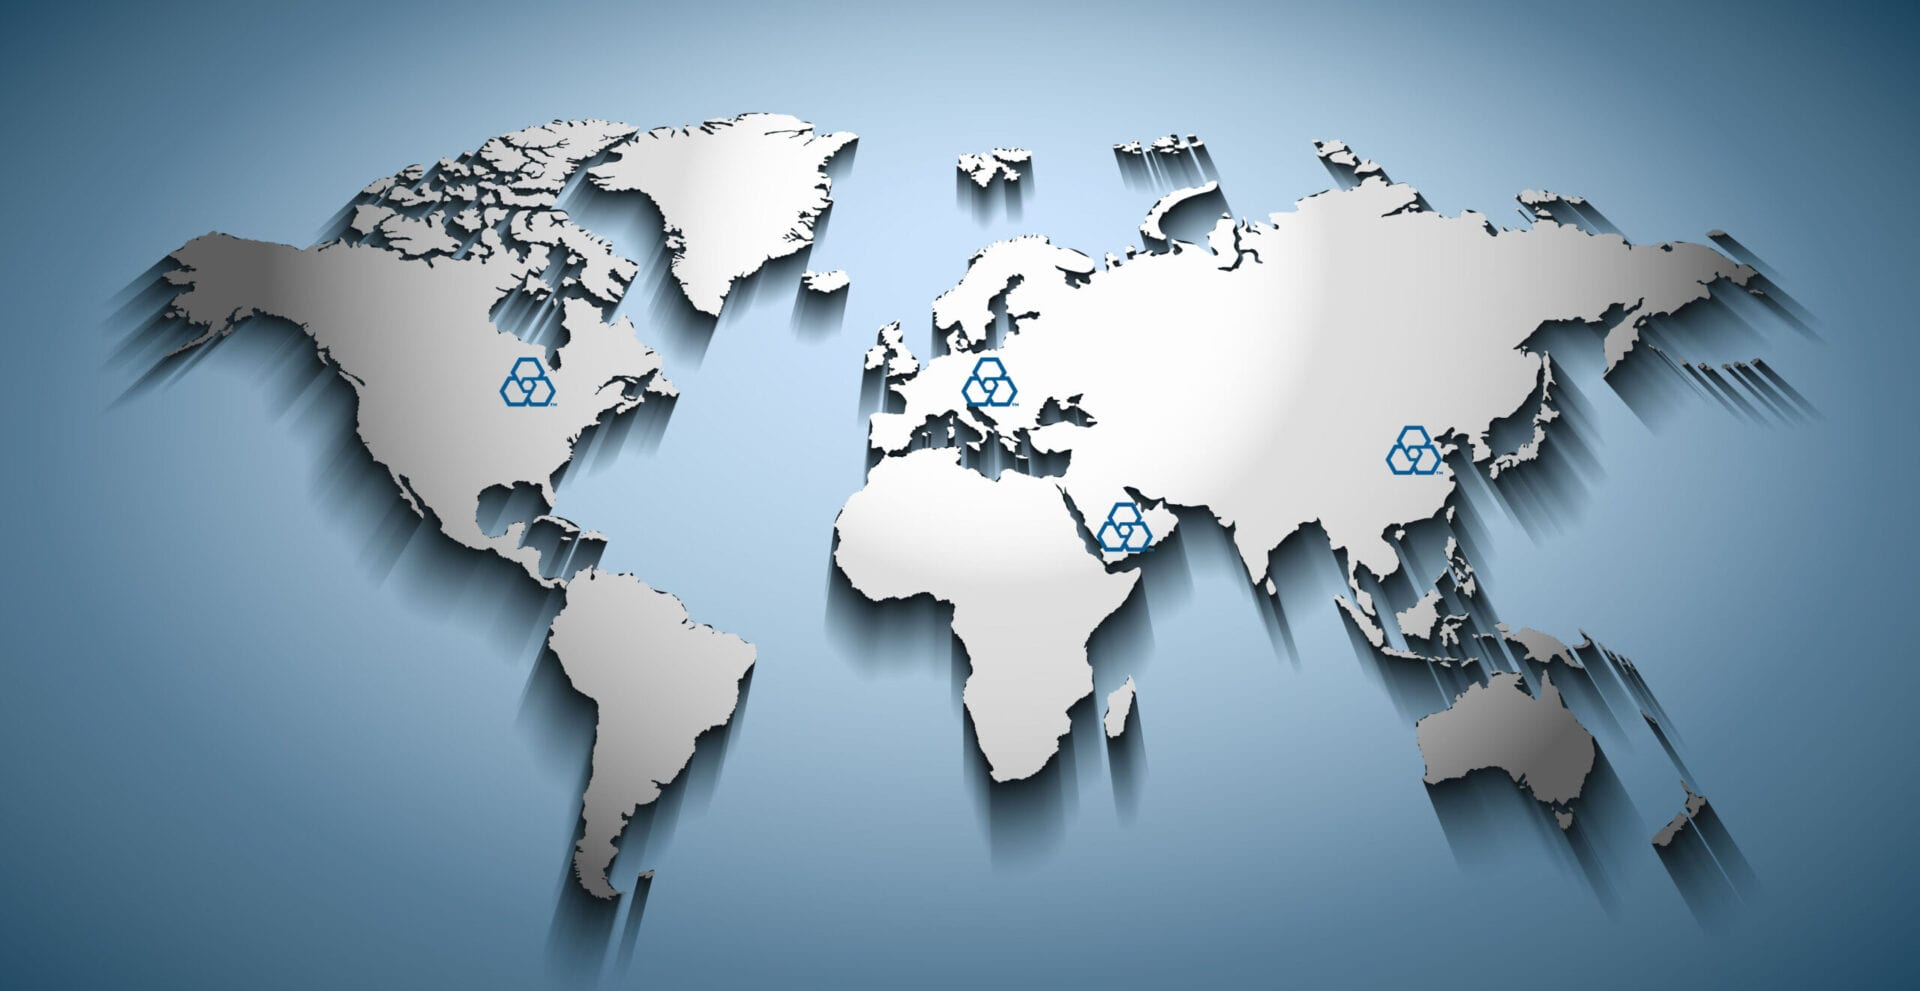 World map embossed over blue gradient